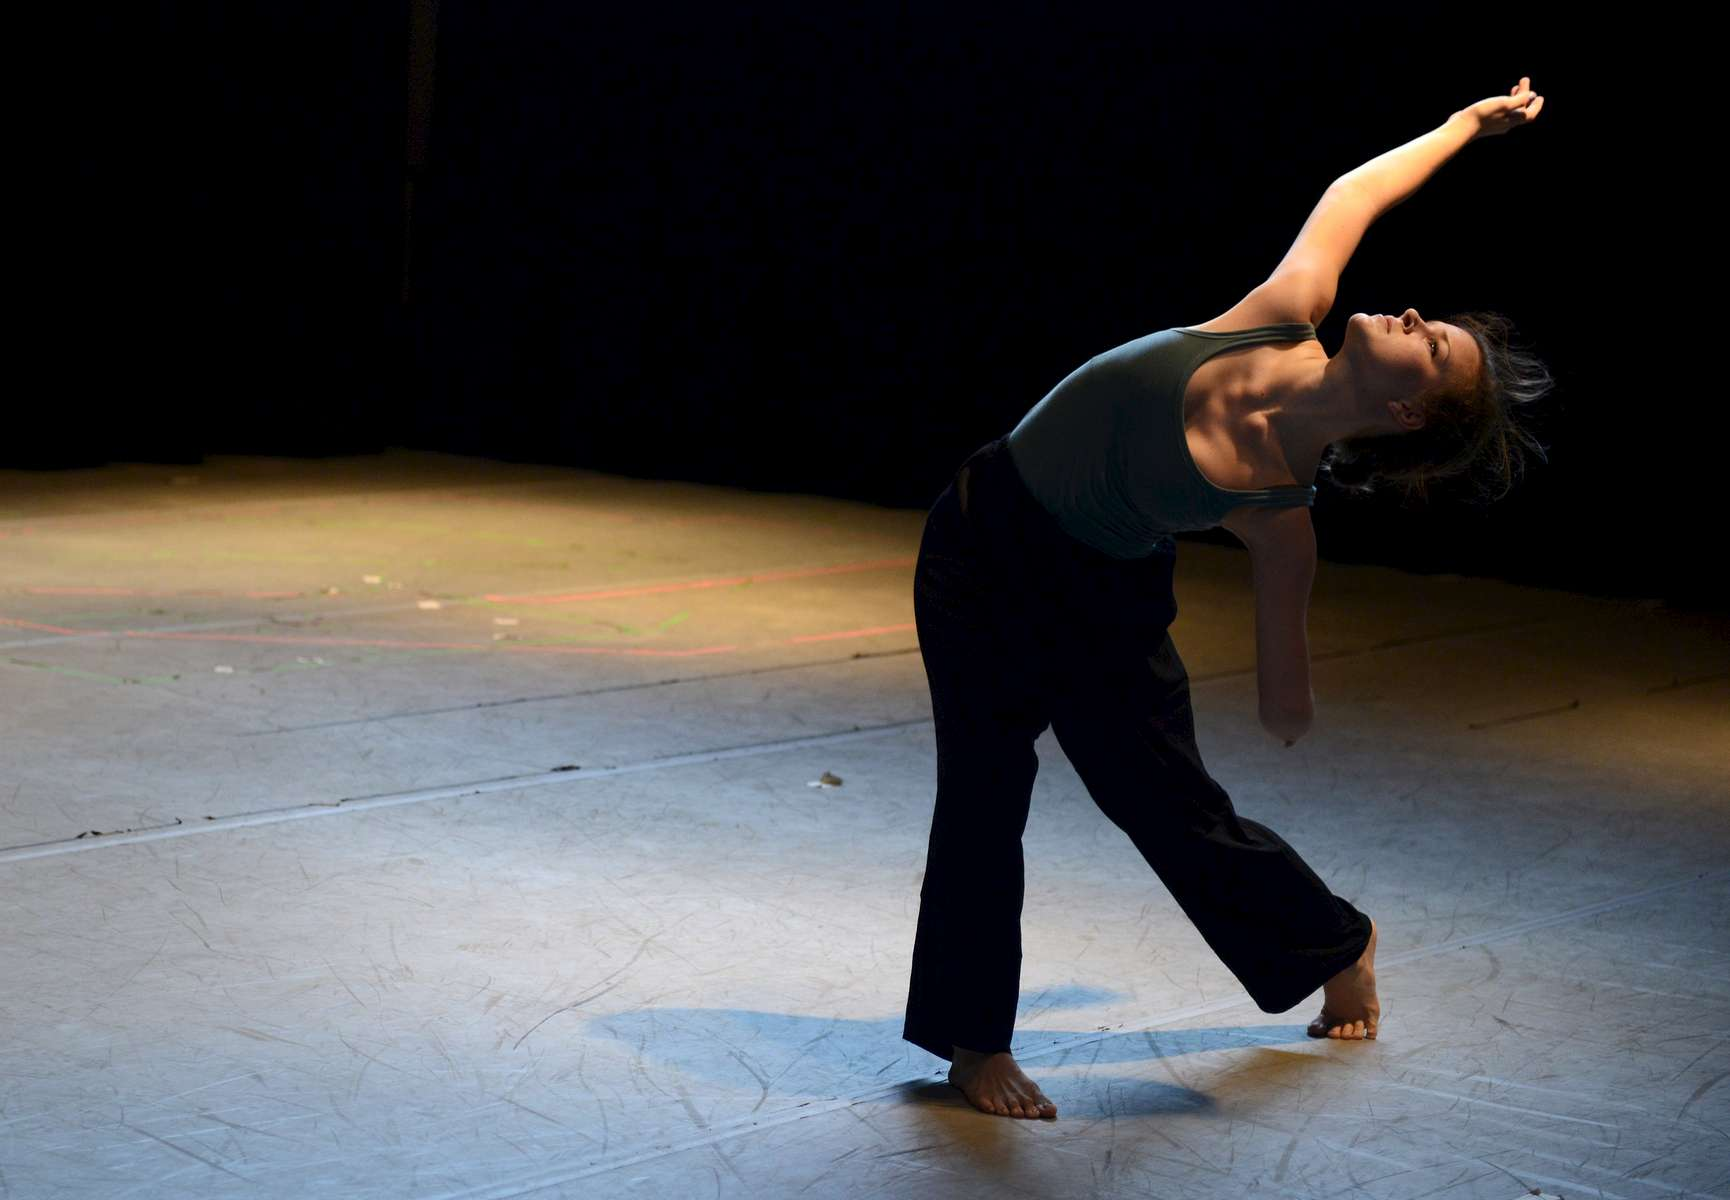 Julie Crothers, a BFA dance student at Elon, choreographed a solo about her prosthetic arm. Crothers was invited to perform the piece in Manhattan.